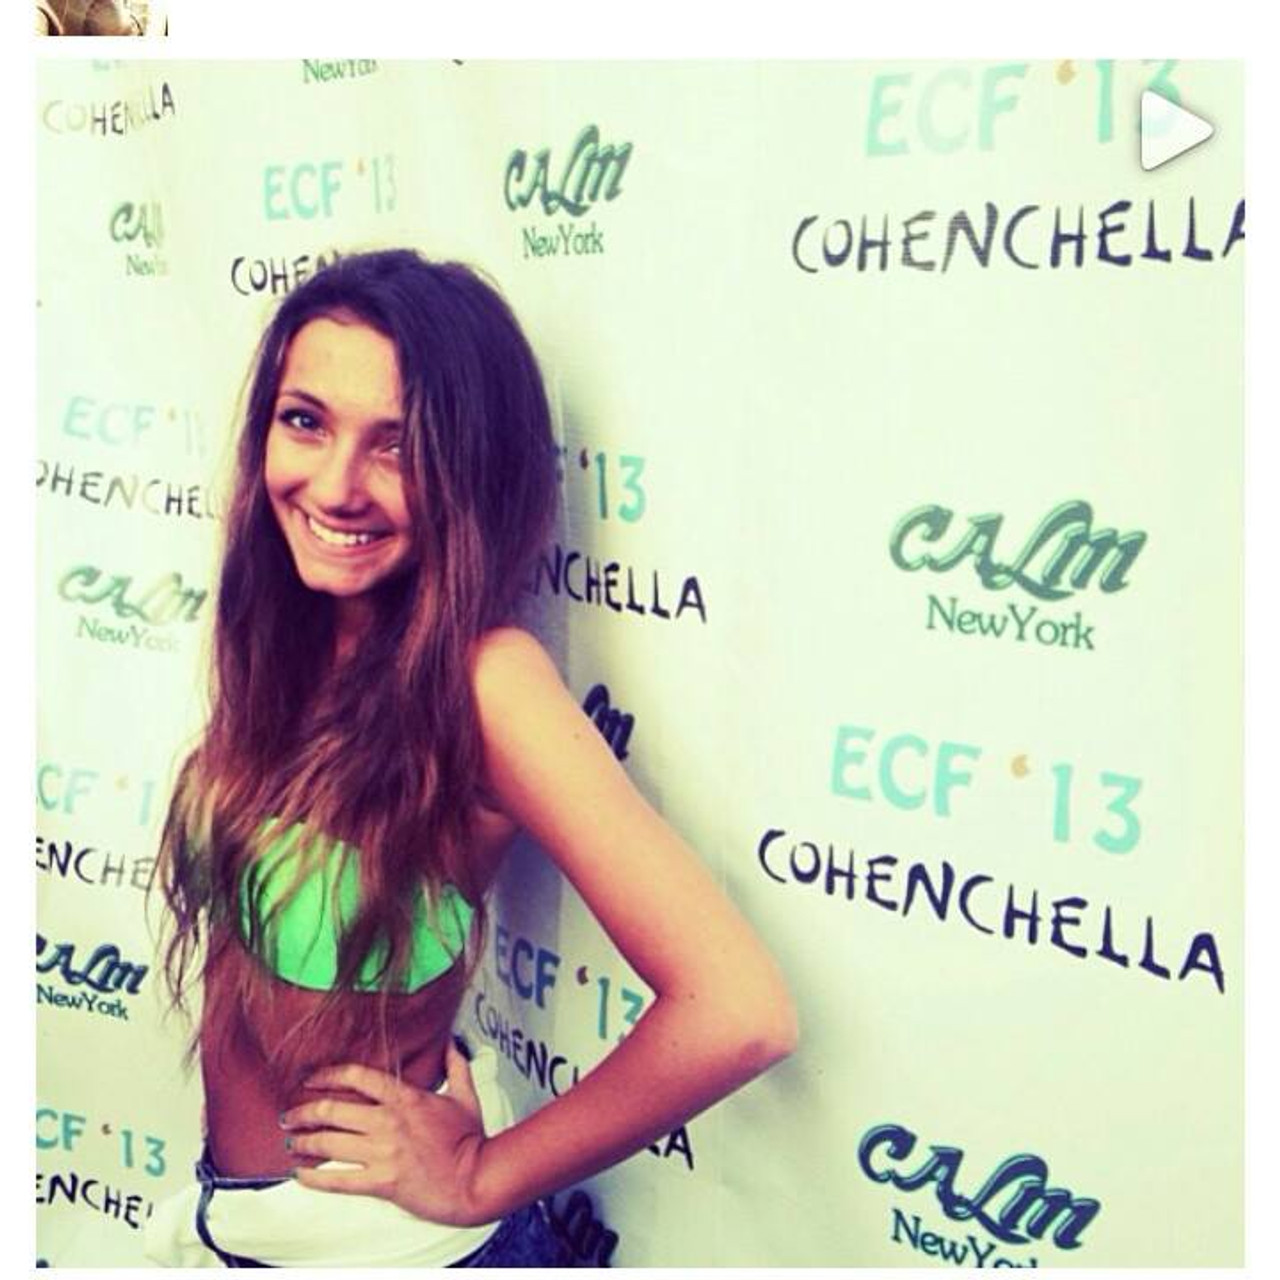 Cohenchella, Photo, Foto, Backdrop, Back drop, Picture, Pic, Runway, red carpet, glamorous, luxurious